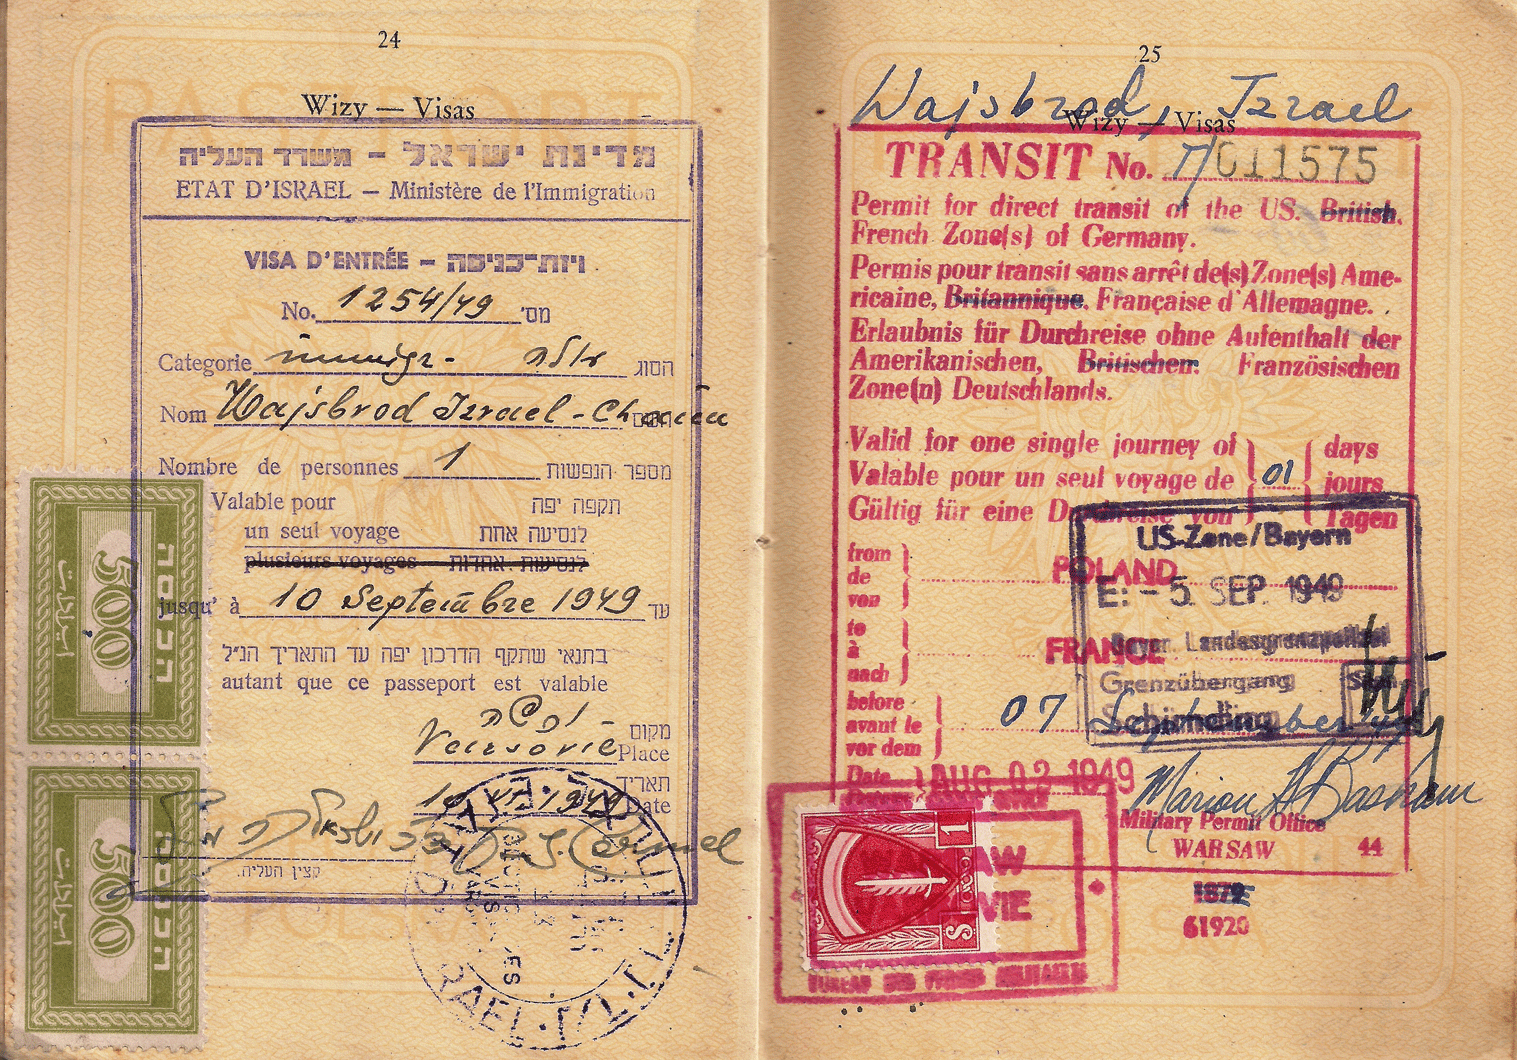 Israel & Allied visas late usage by September 1949